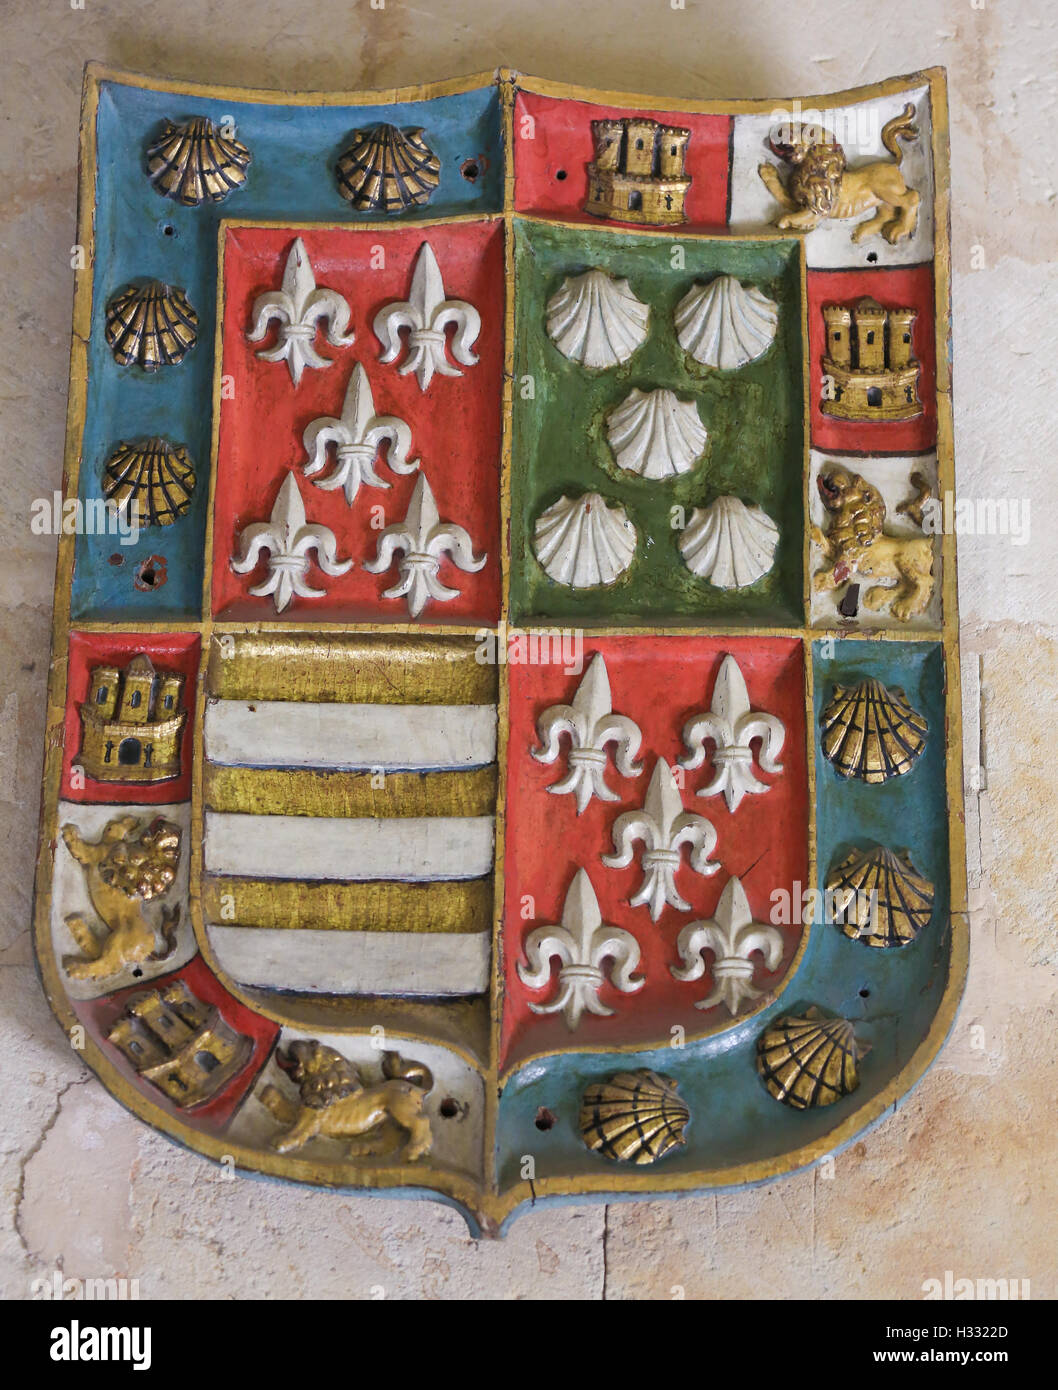 Heraldic Coat of Arms in the Cathedral of Salamanca, Spain - Stock Image